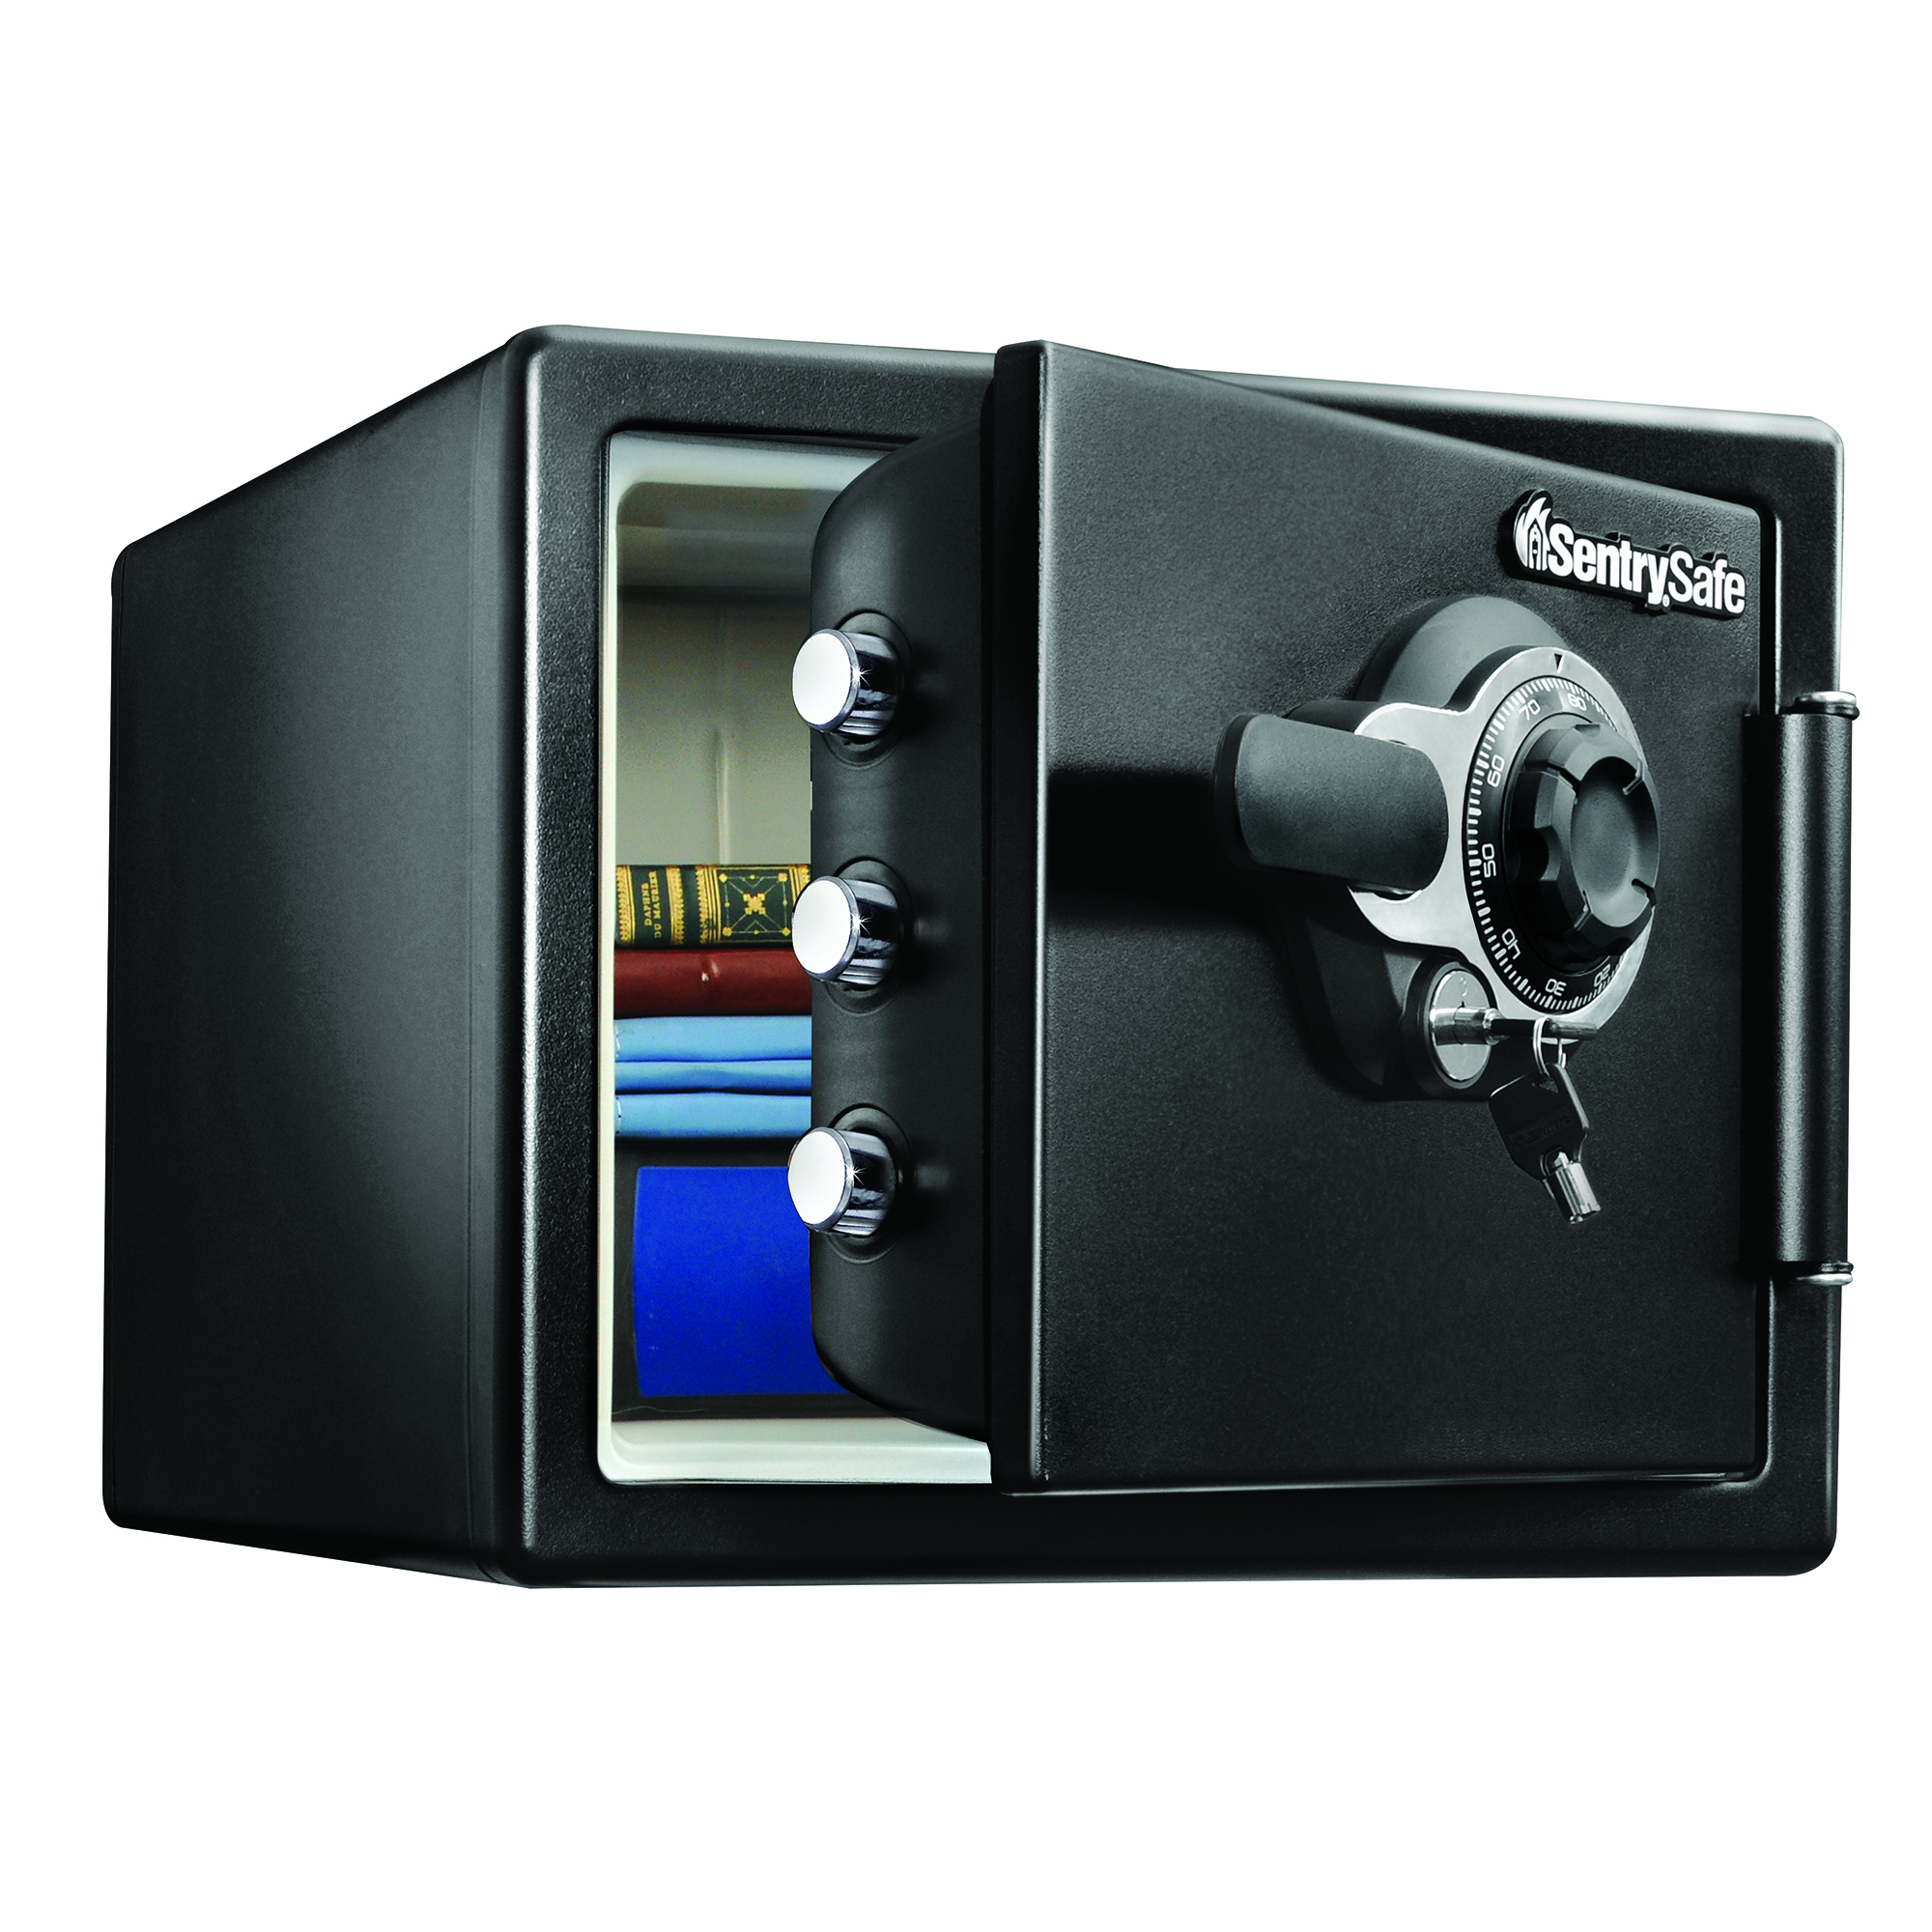 Sentry®Safe Fire-Safe® Combination Safe, 0.8-Cubic-Foot Capacity, Black